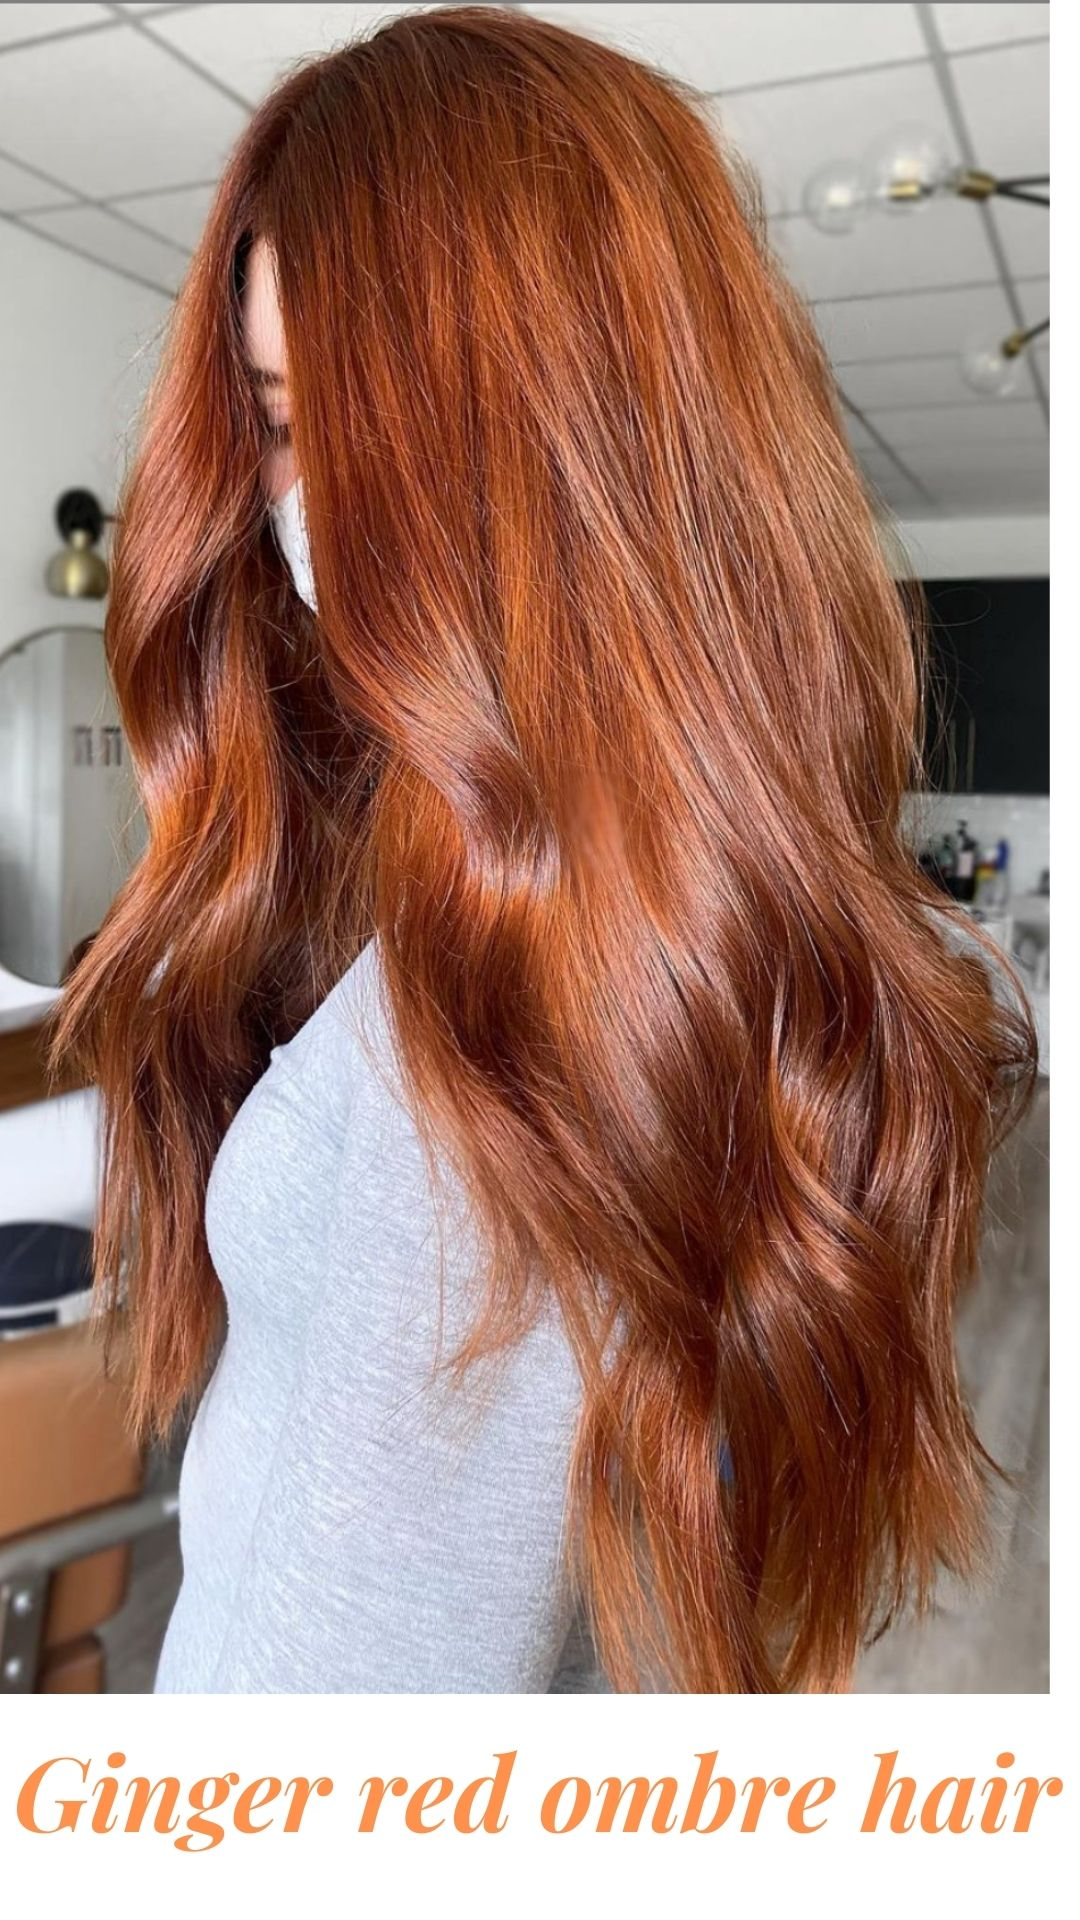 Fancy ginger orange hair color and giner hair shades ideas 2021